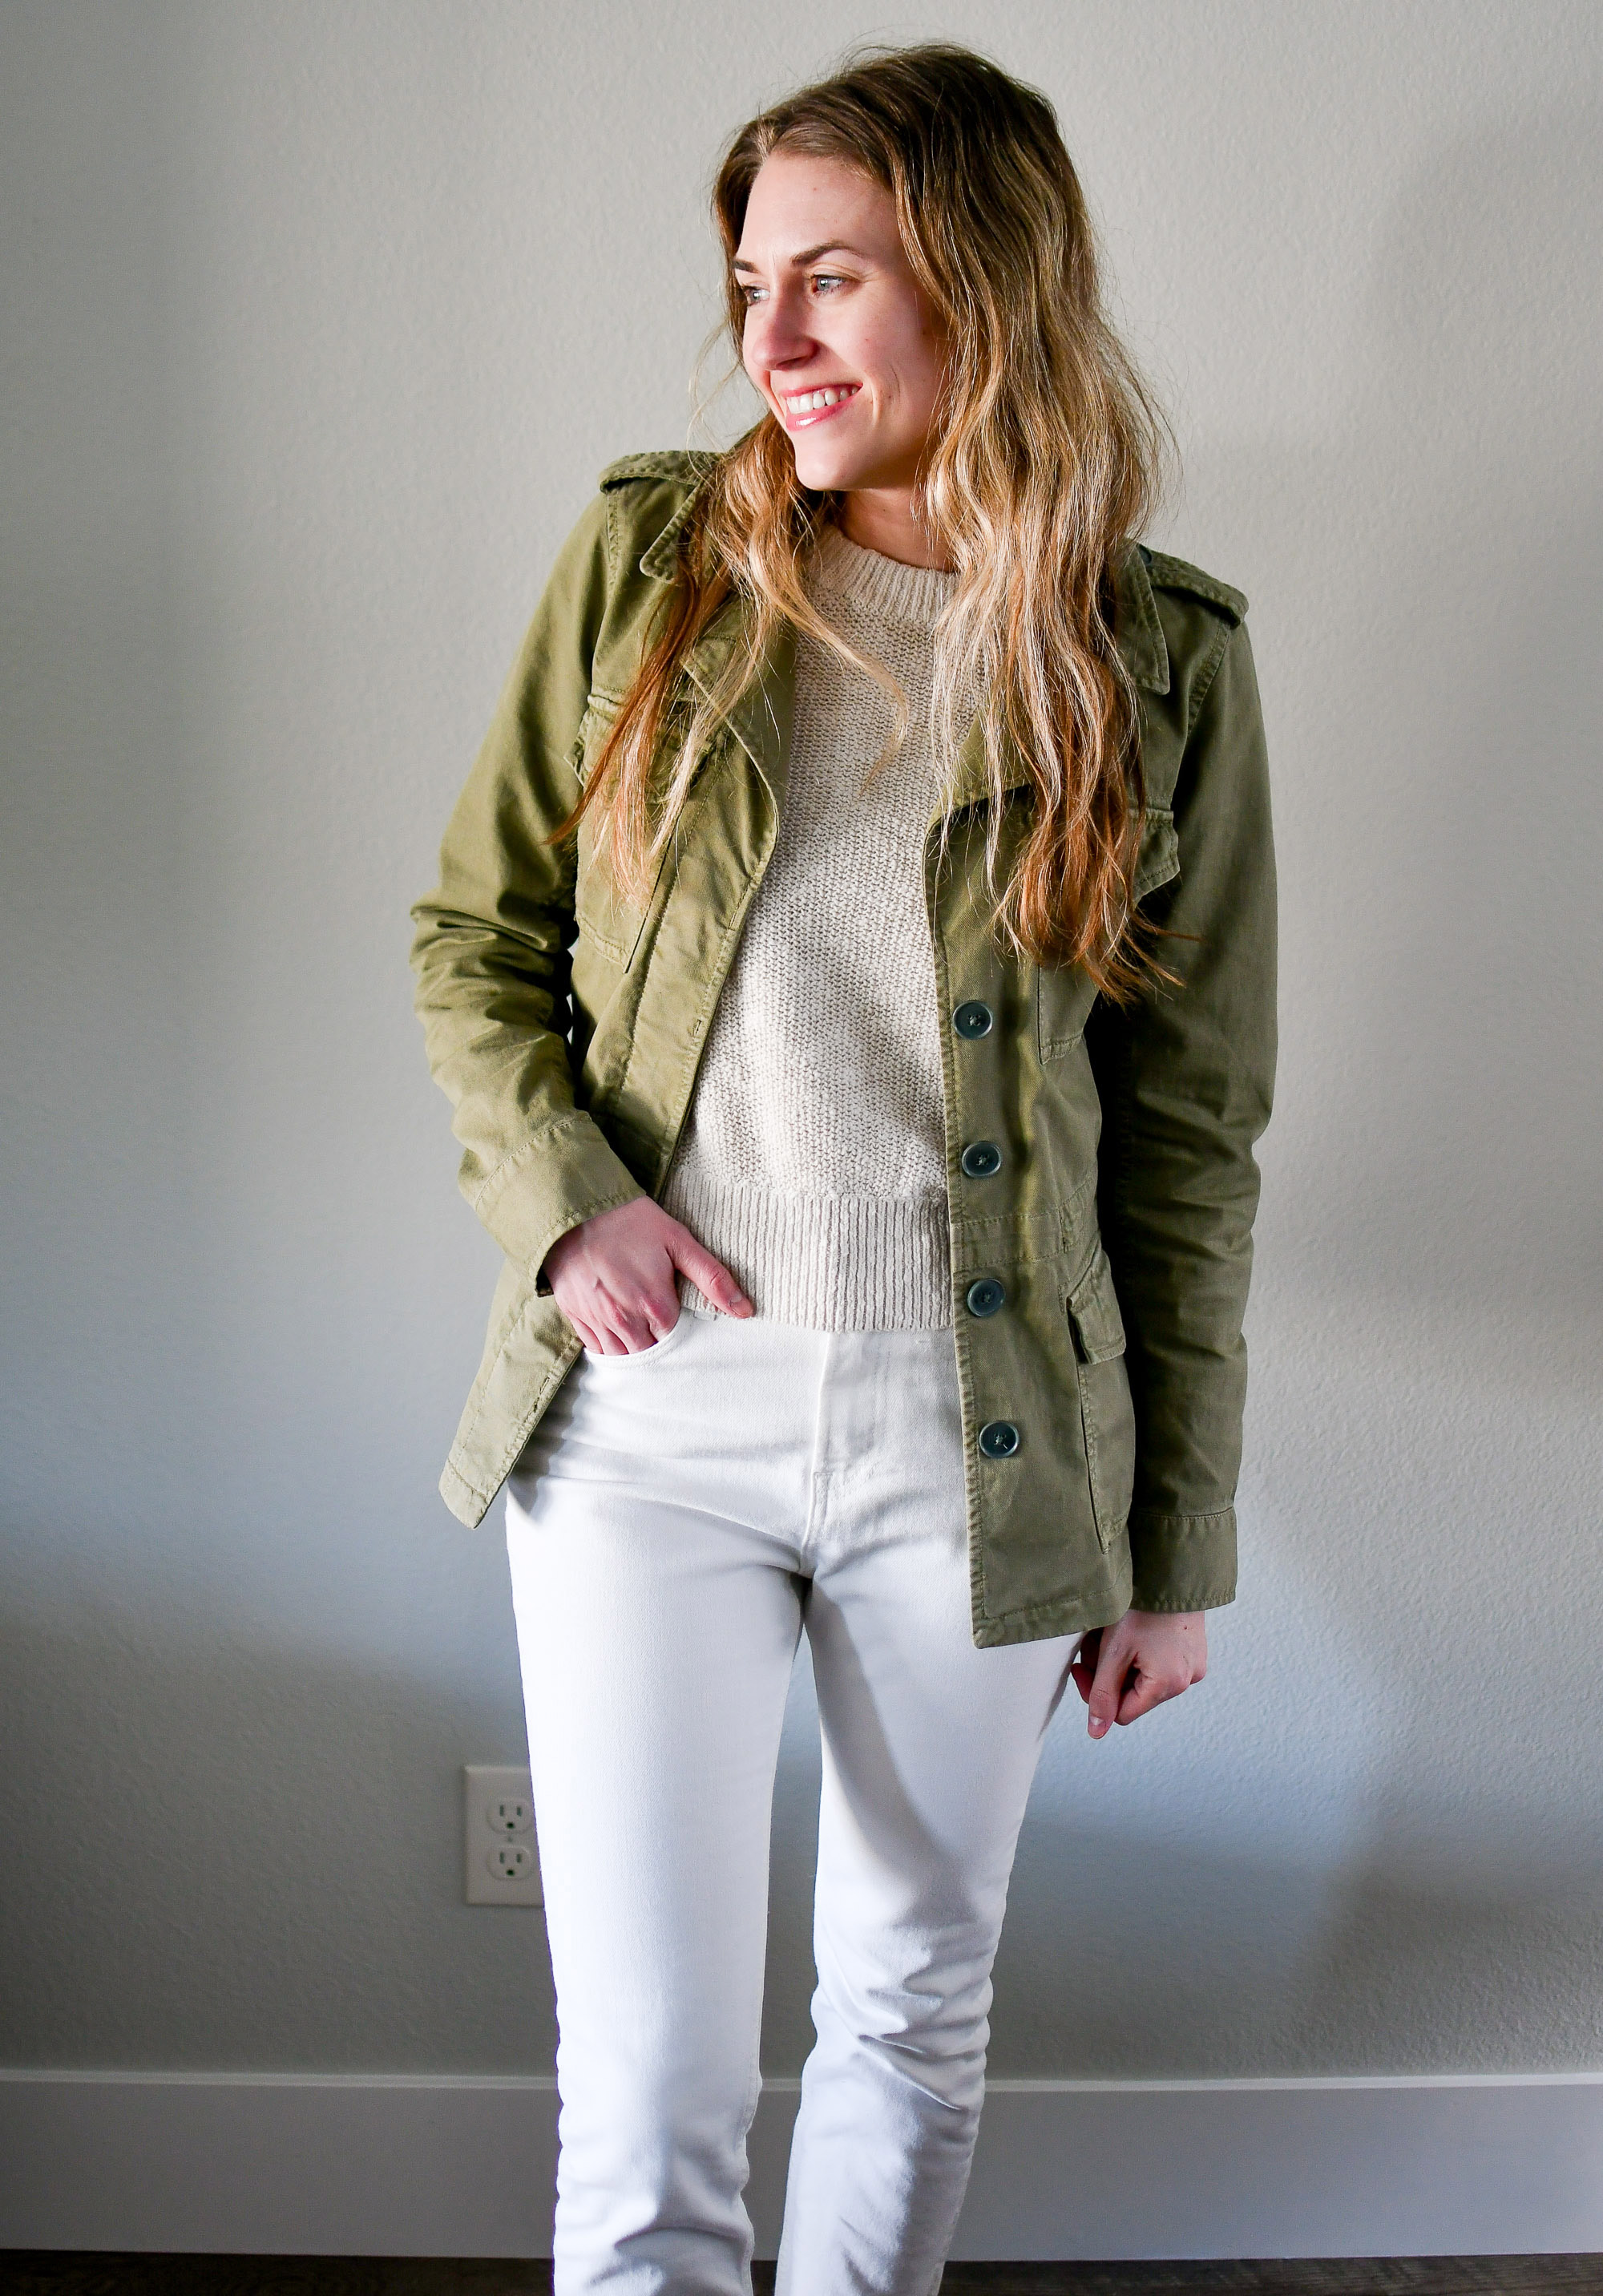 Green utility jacket spring outfit — Cotton Cashmere Cat Hair